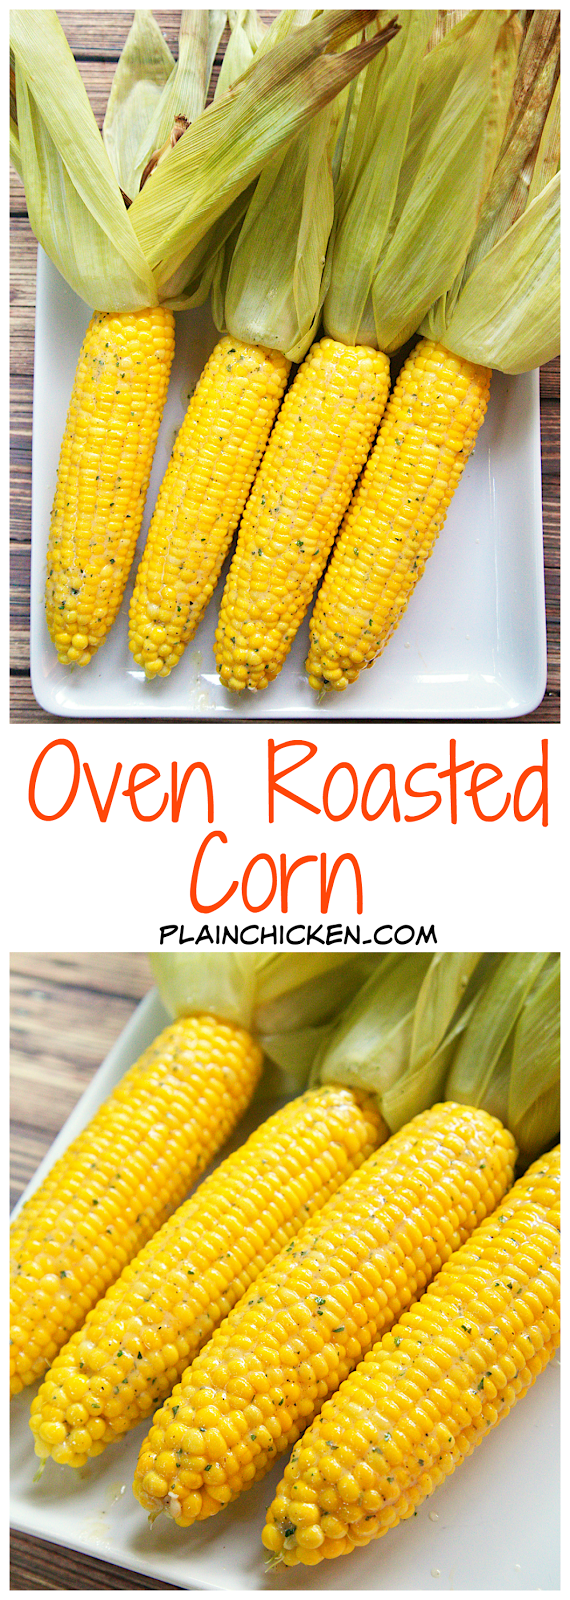 Oven Roasted Corn - throw the corn in the oven with the husks on and bake - the result is THE BEST corn on the cob ever! We will never make corn any other way!